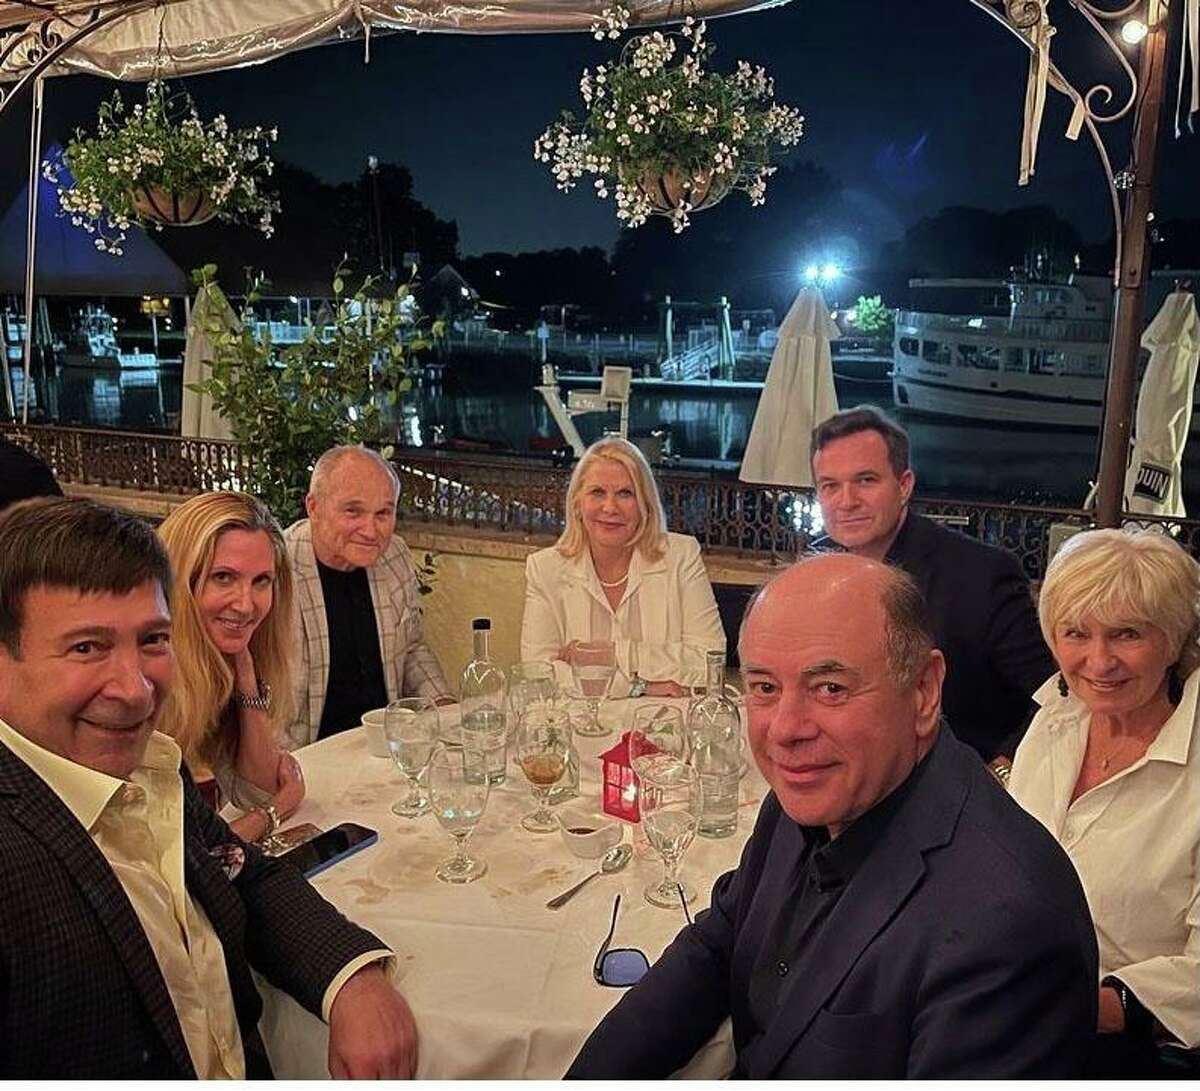 WOR radio host Mark Simone; conservative media pundit, author and lawyer Ann Coulter; former New York City police Commissioner Ray Kelly; women's rights activist/philanthropist Francine LeFrak; Greg Kelly, host of 'Greg Kelly Reports' on Newsmax TV, and his mother, Veronica Kelly; and director/screenwriter Rick Friedberg dine on the patio at L'Escale in Greenwich last weekend.